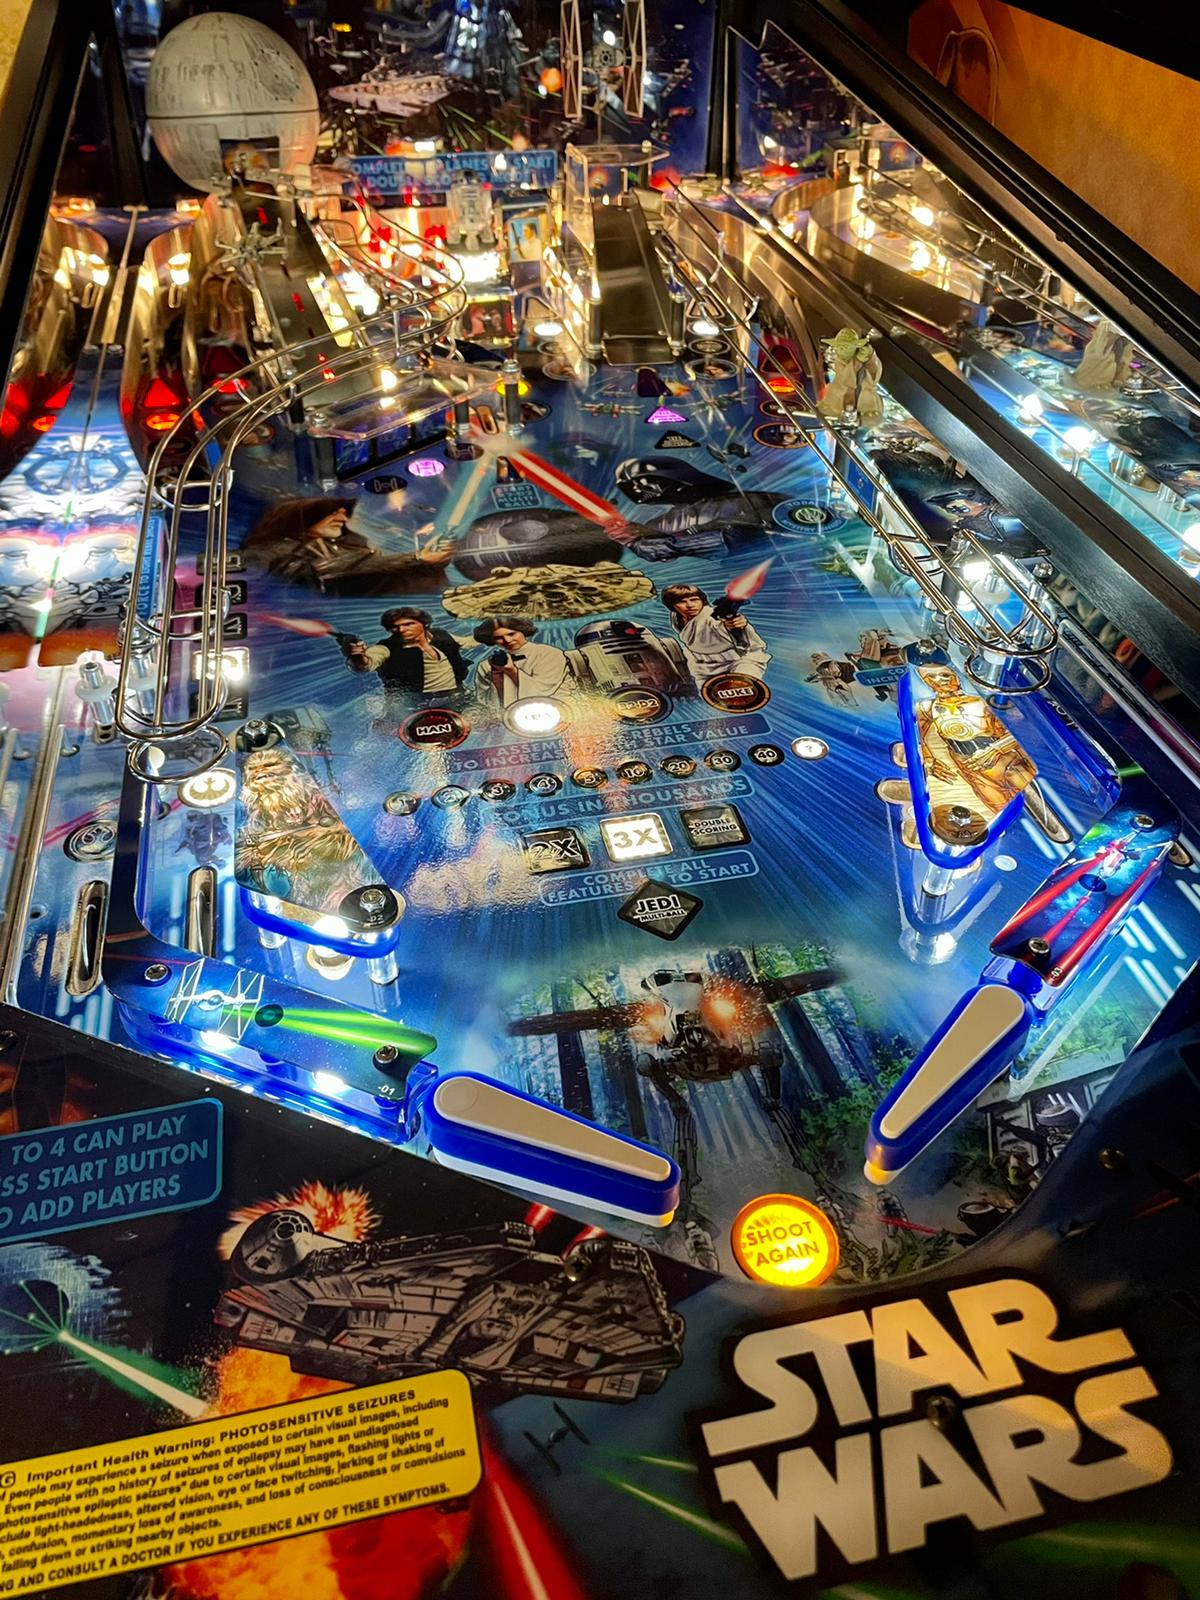 Star Wars Home Edition - playfield